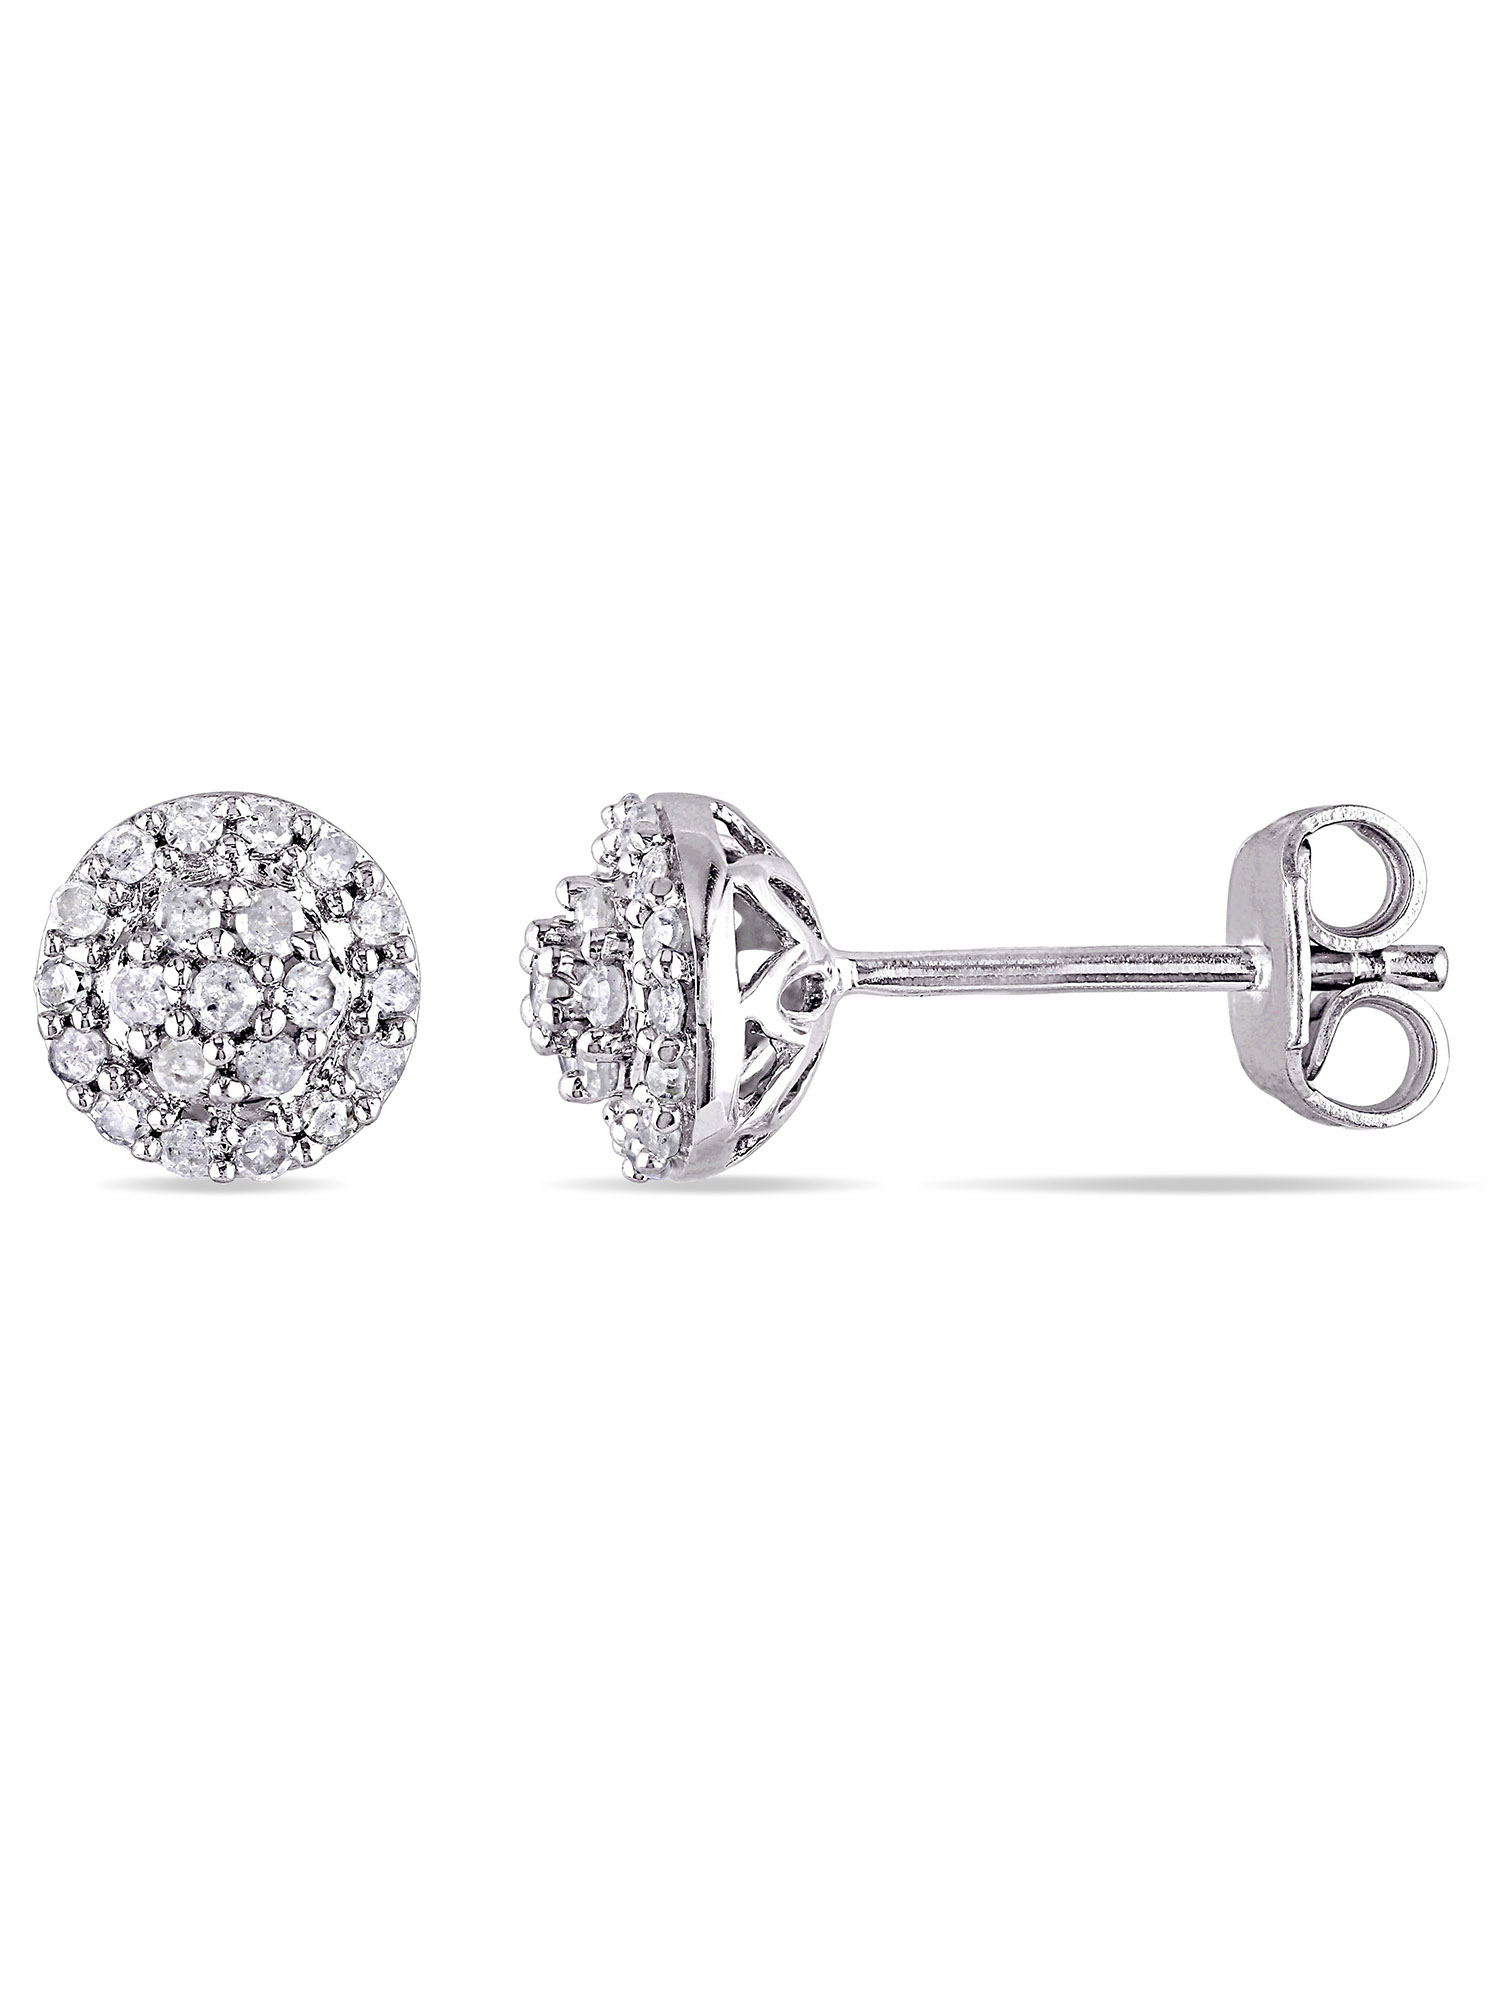 1/4 Carat T.W. Diamond Sterling Silver Halo Stud Earrings